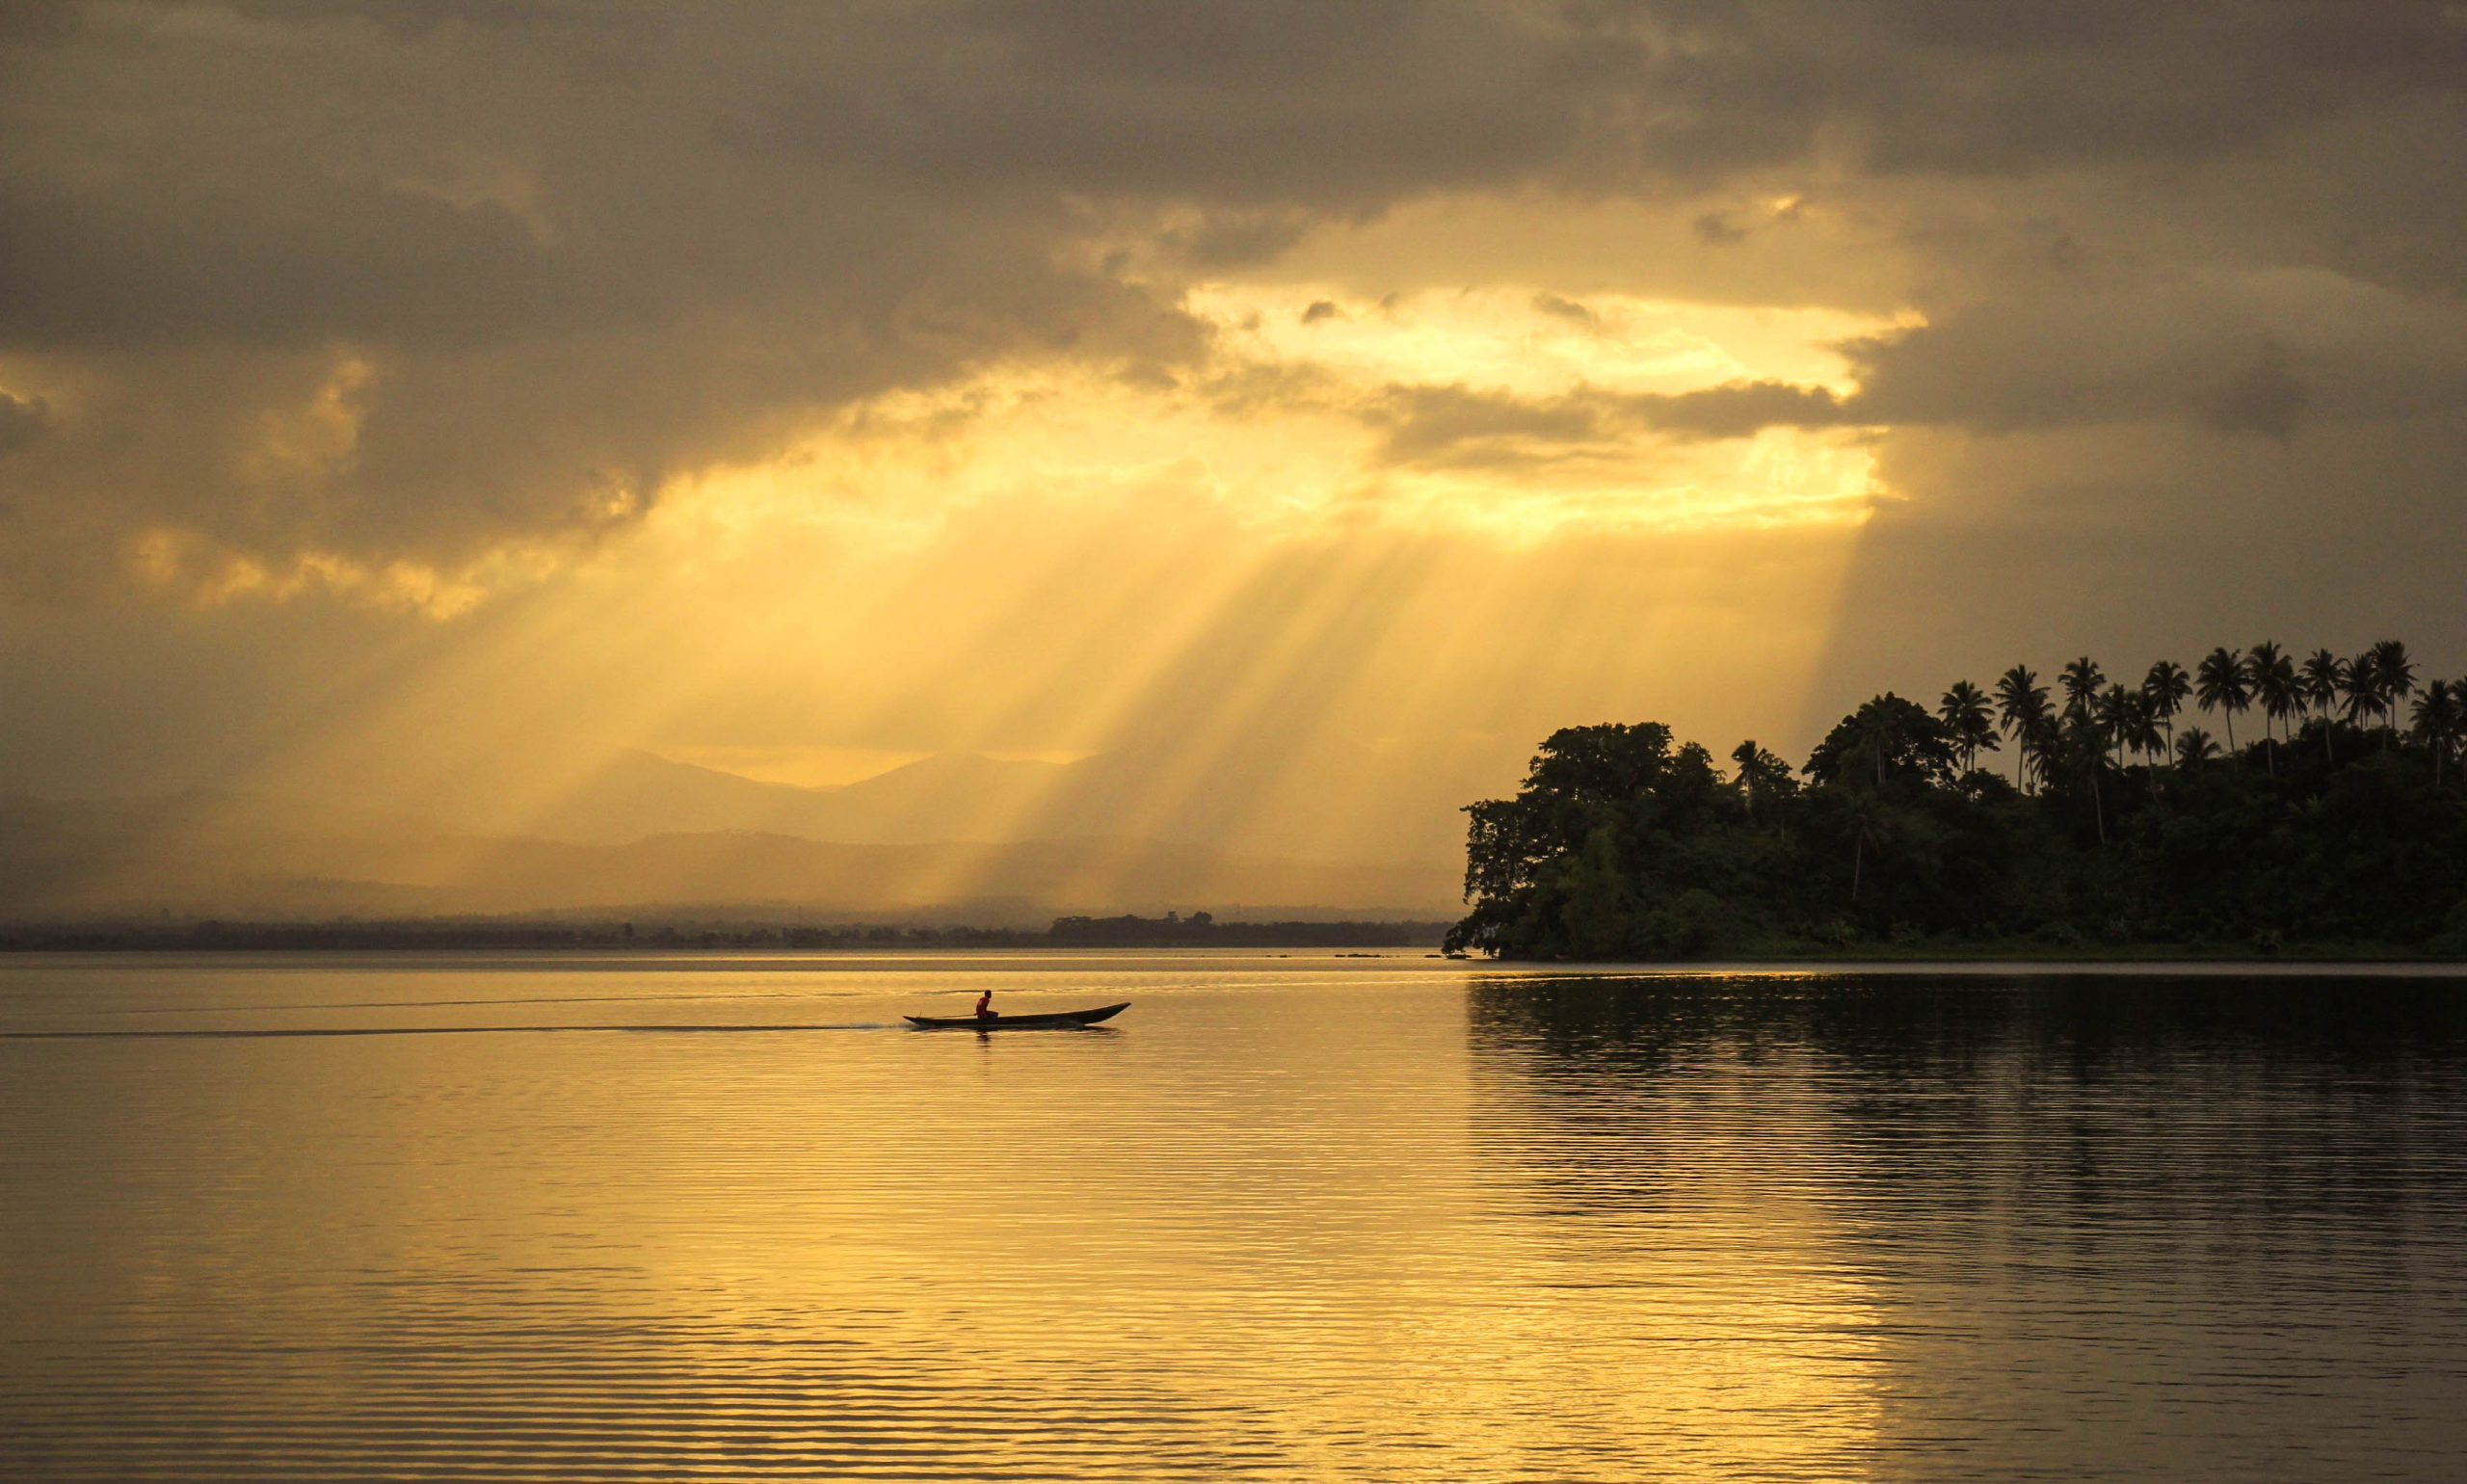 In the distance, a lone boat floats through a vast lake (Naujan Lake, to be specific, one of the largest lakes in the Philippines) illuminated by shafts of sunlight streaming through the clouds